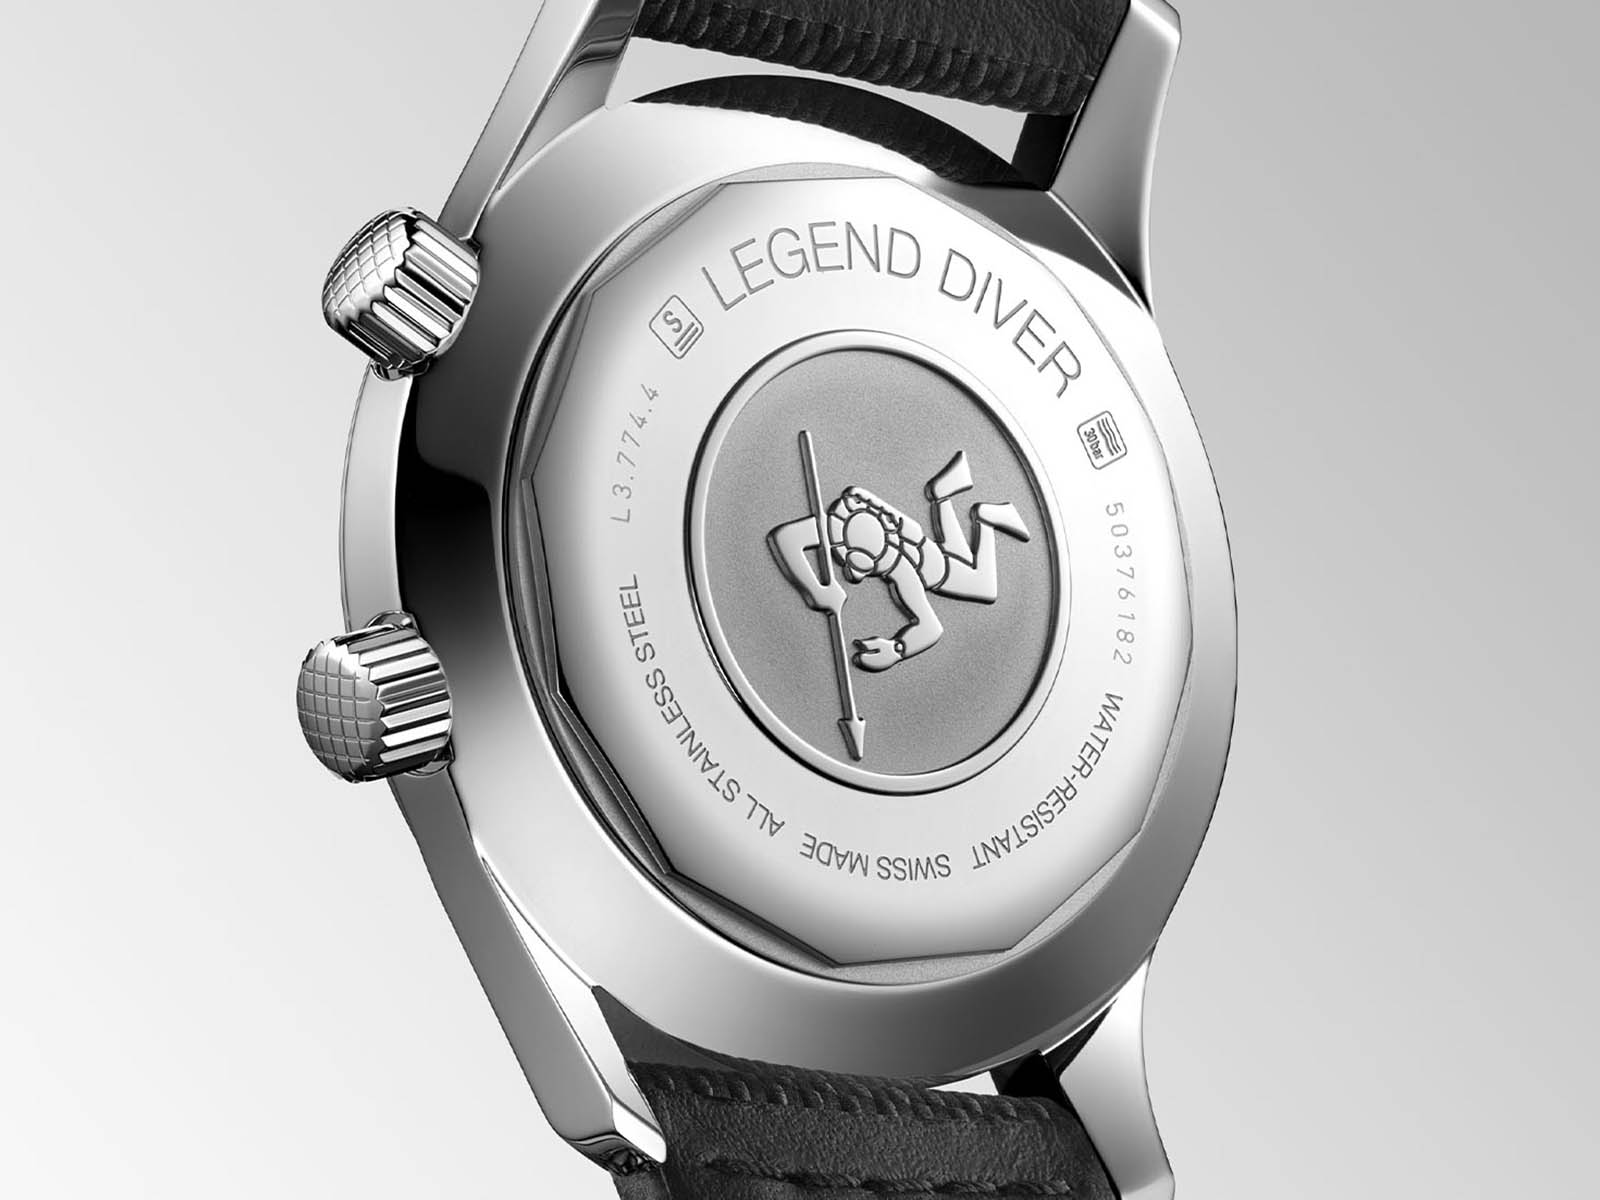 longines-legend-diver-new-dial-colors-2.jpg